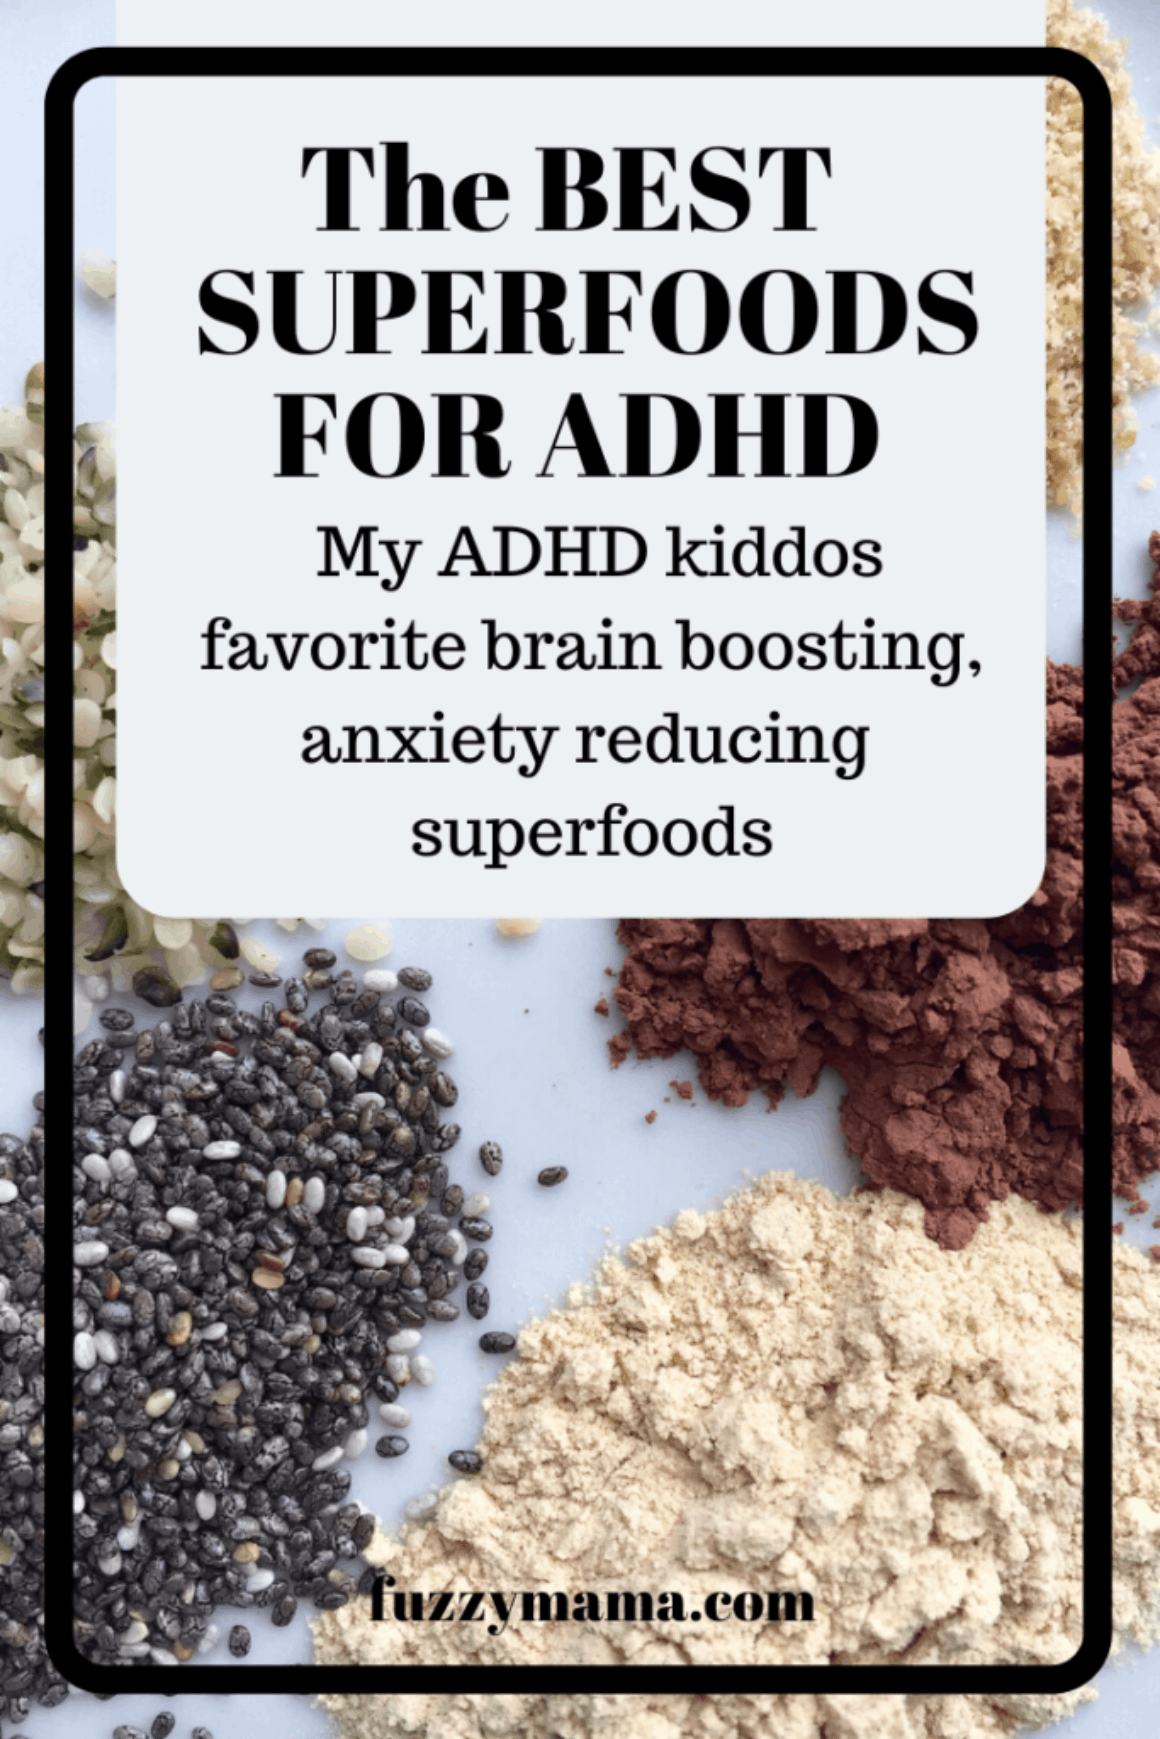 Best Superfoods for ADHD